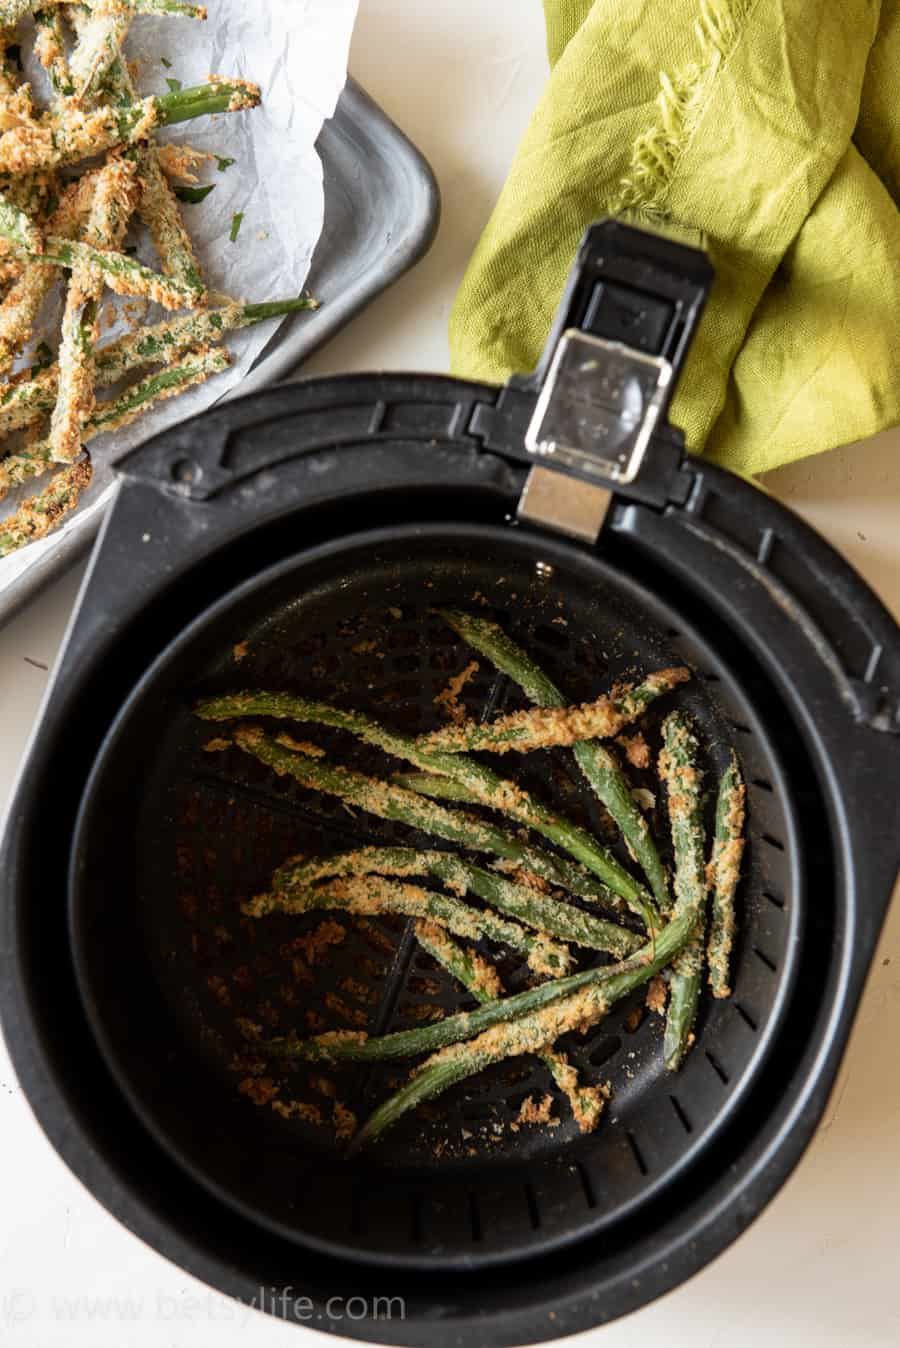 Air fryer basket filled with crispy green bean fries